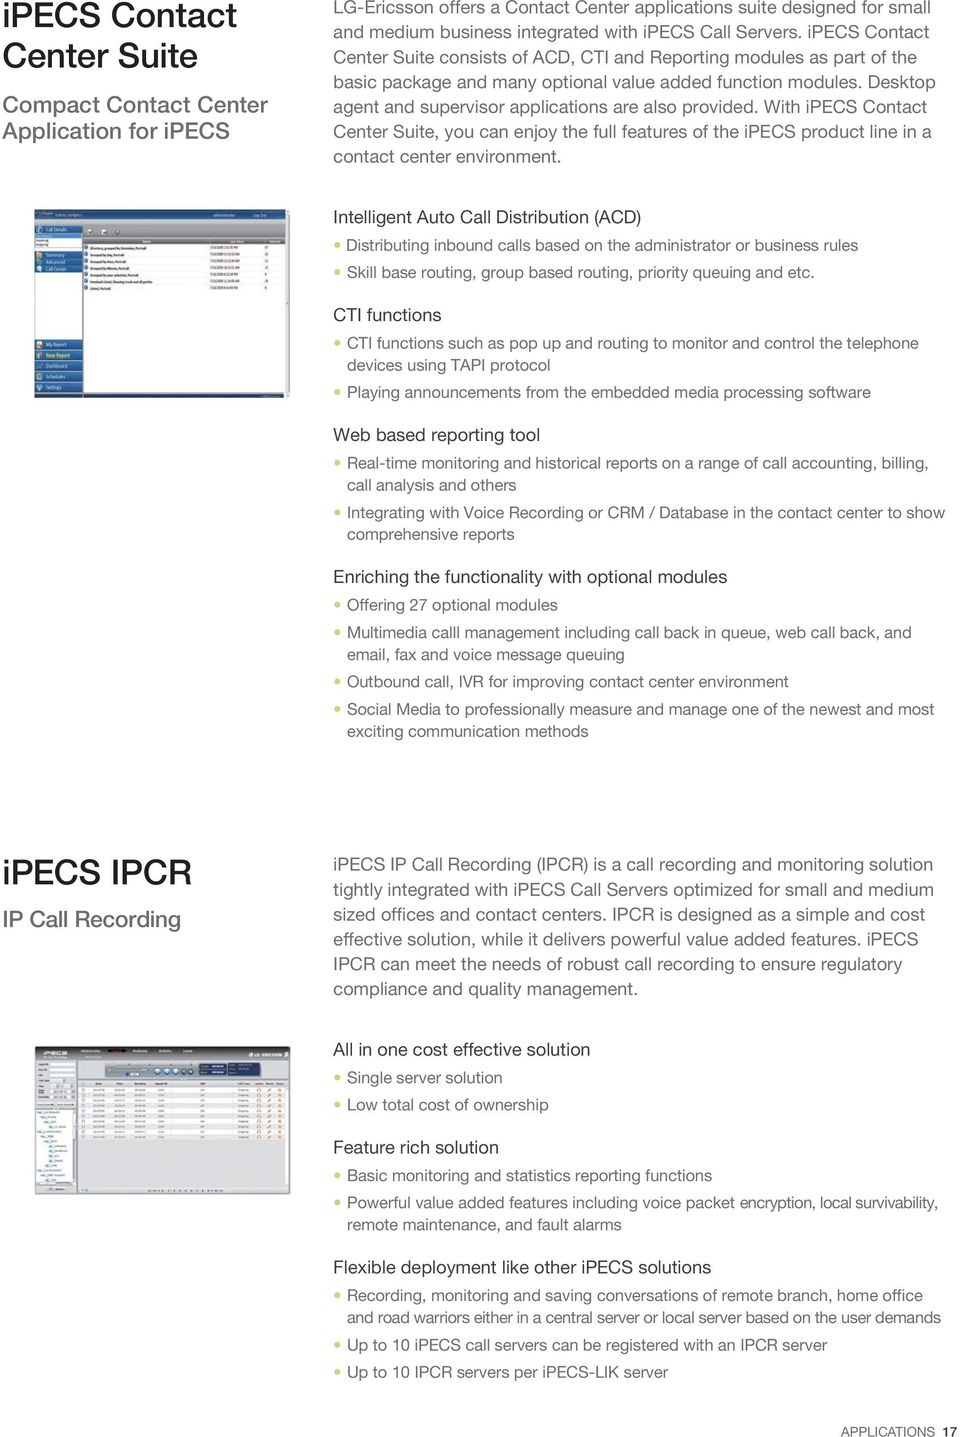 Desktop agent and supervisor applications are also provided. With ipecs Contact Center Suite, you can enjoy the full features of the ipecs product line in a contact center environment.